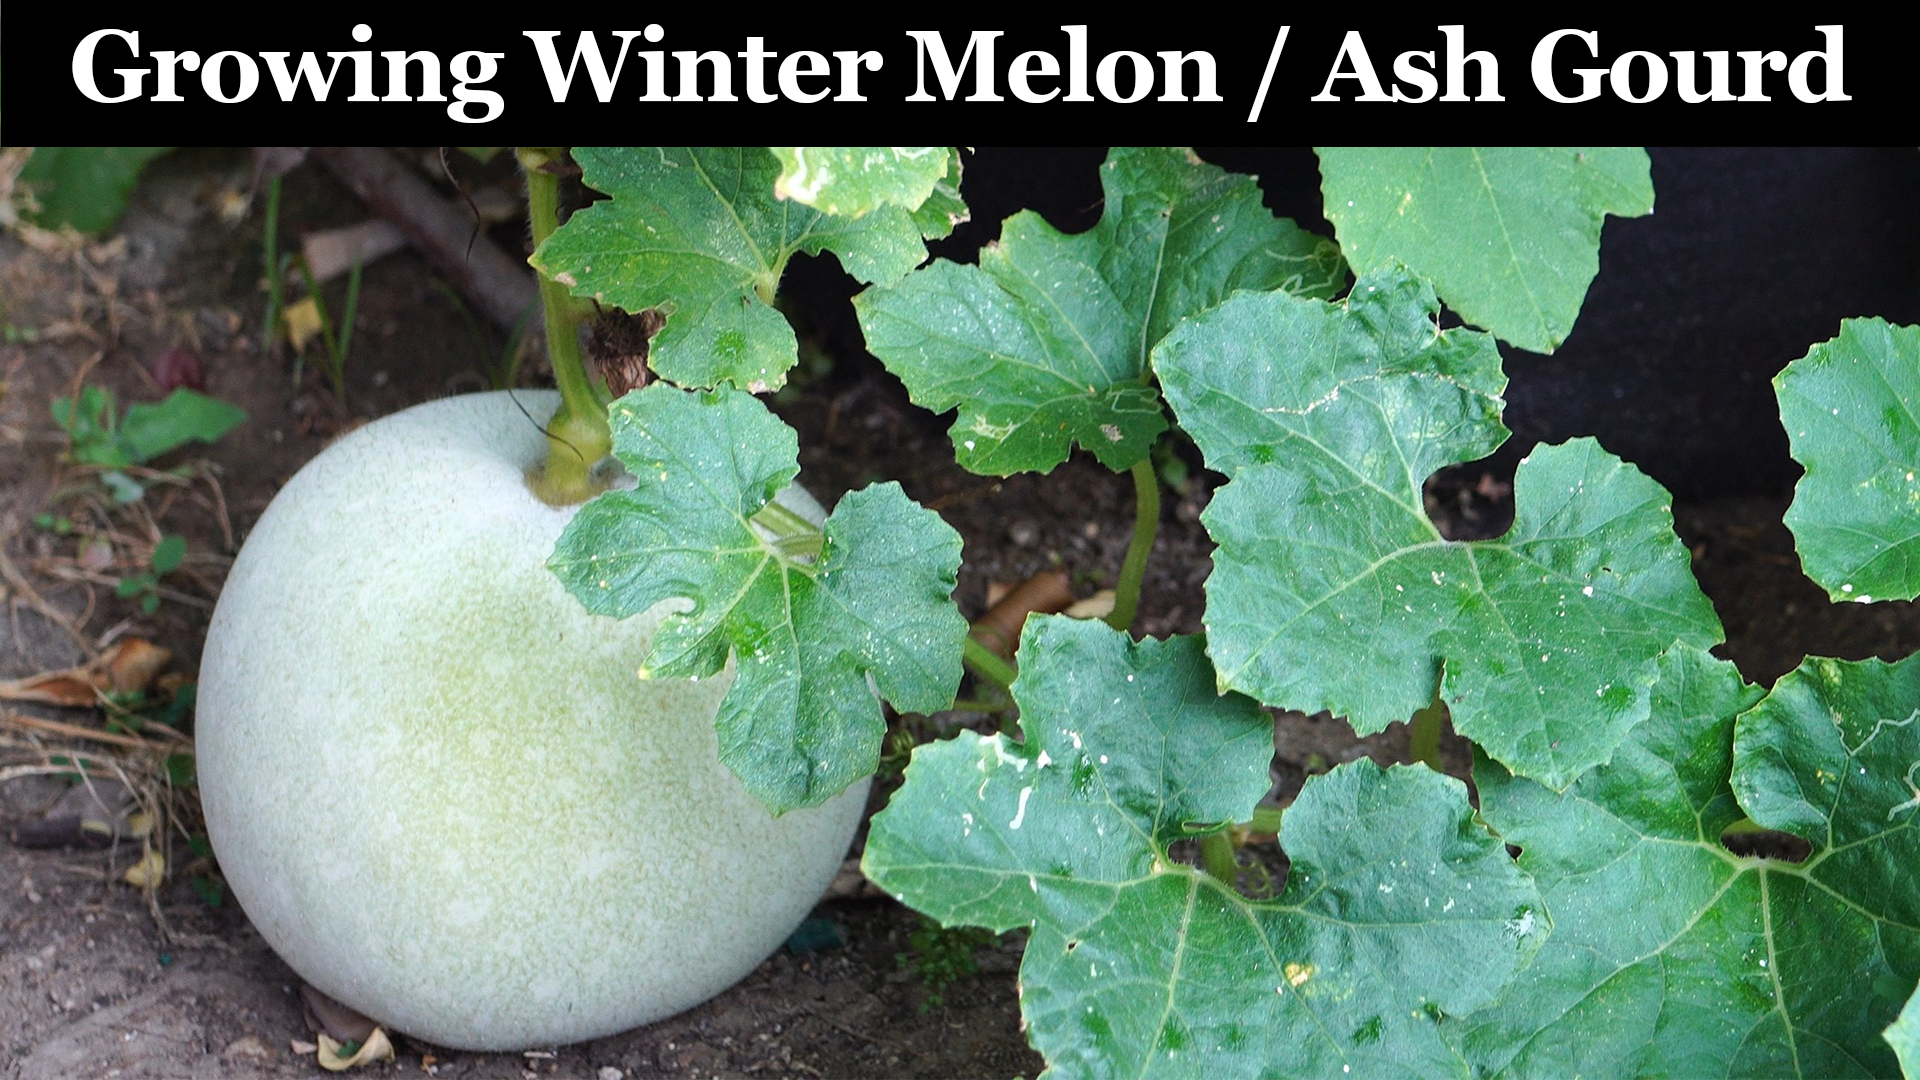 How To Grow Winter Melon Or Ash Gourd In Grow Bags